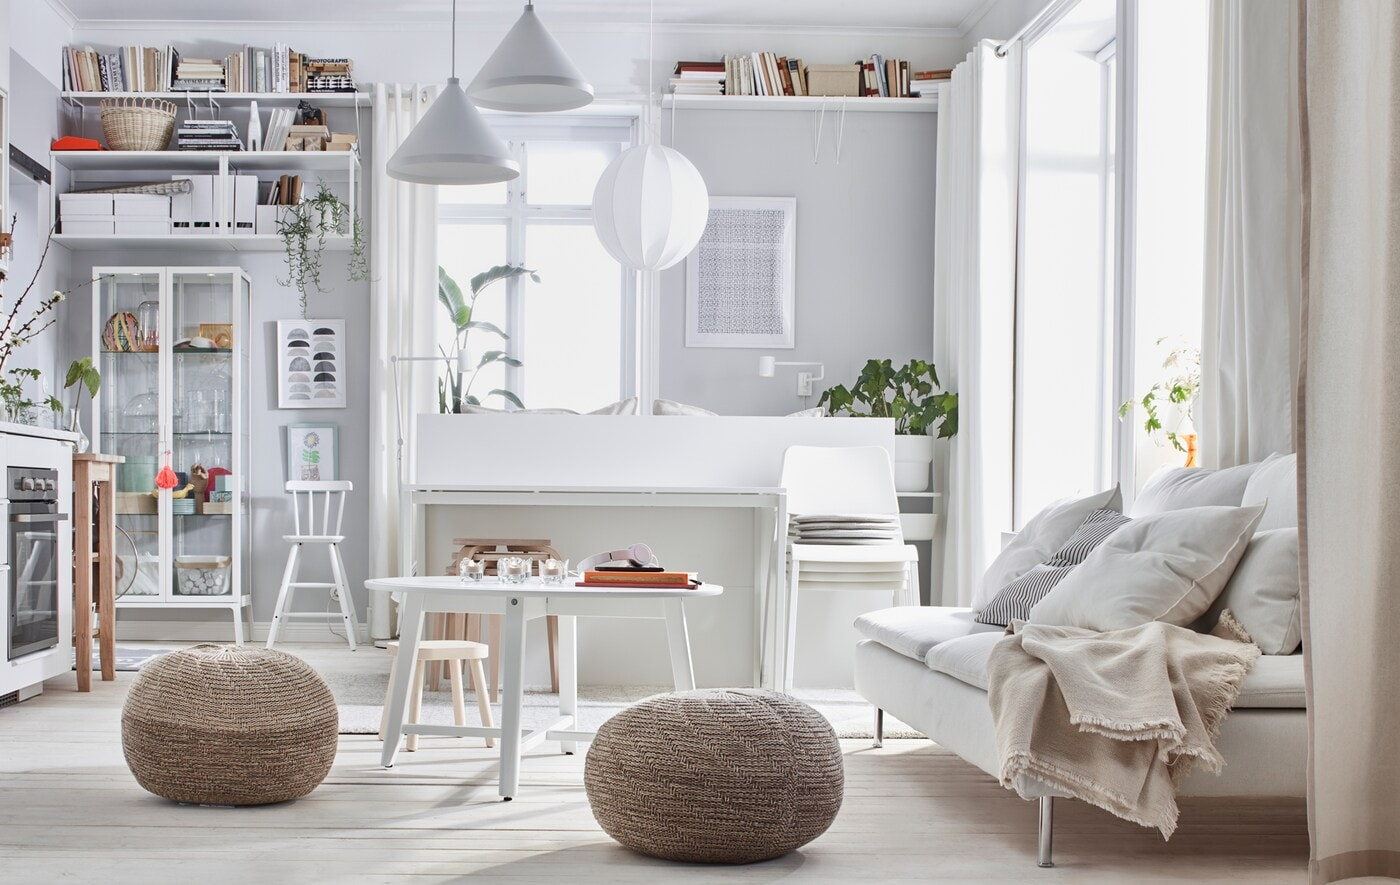 One-room apartment interior with a light colour scheme: bed, sofa, kitchenette, storage, and two SANDARED pouffes.